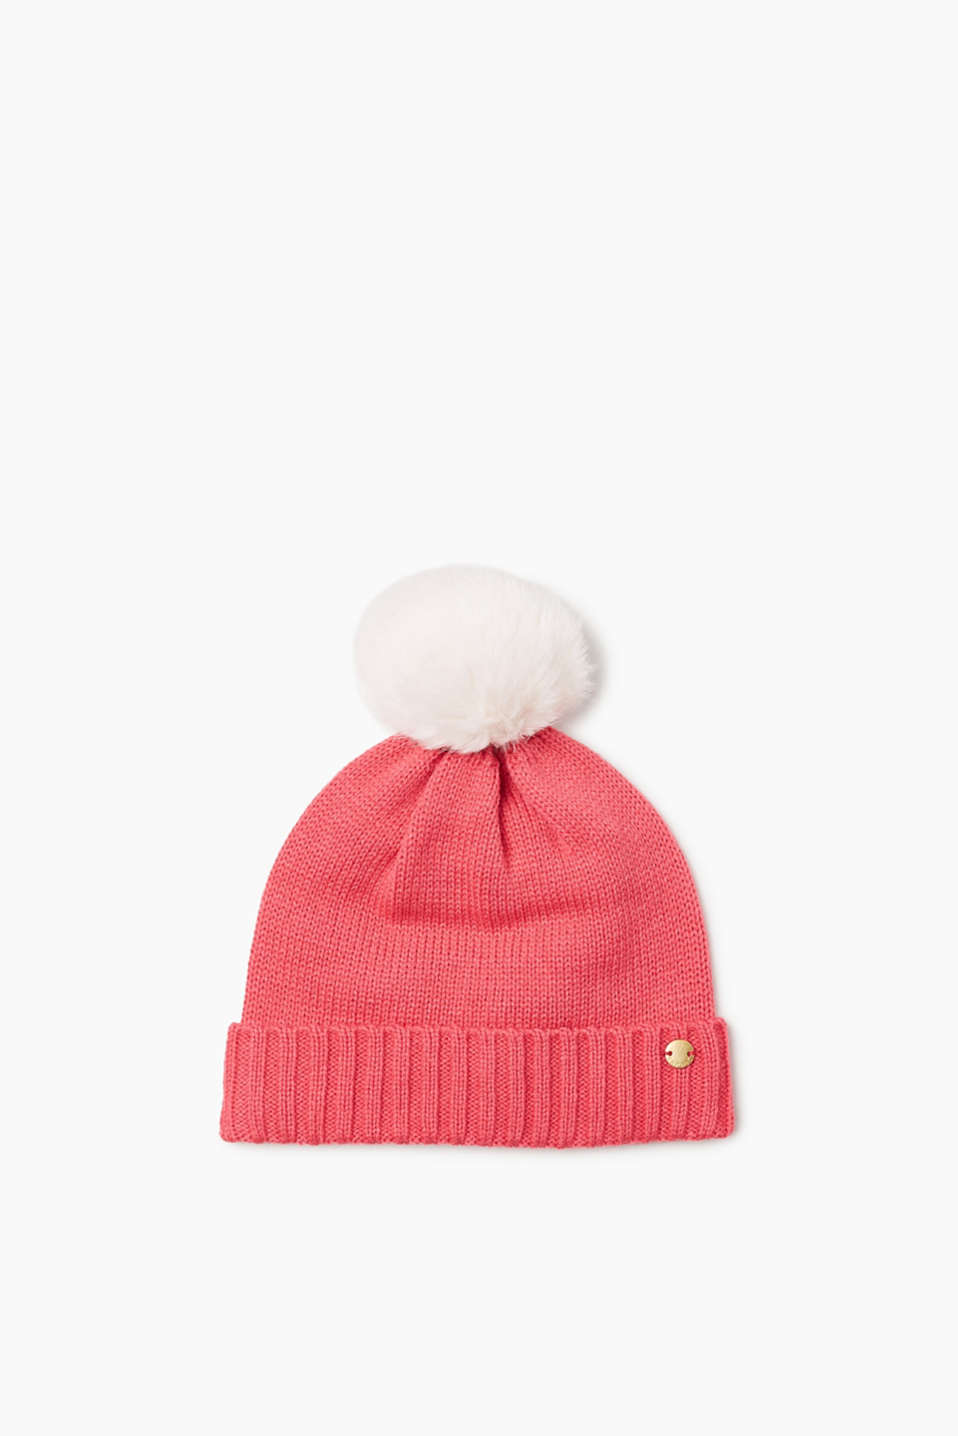 Esprit - Knitted hat with a fur pompom